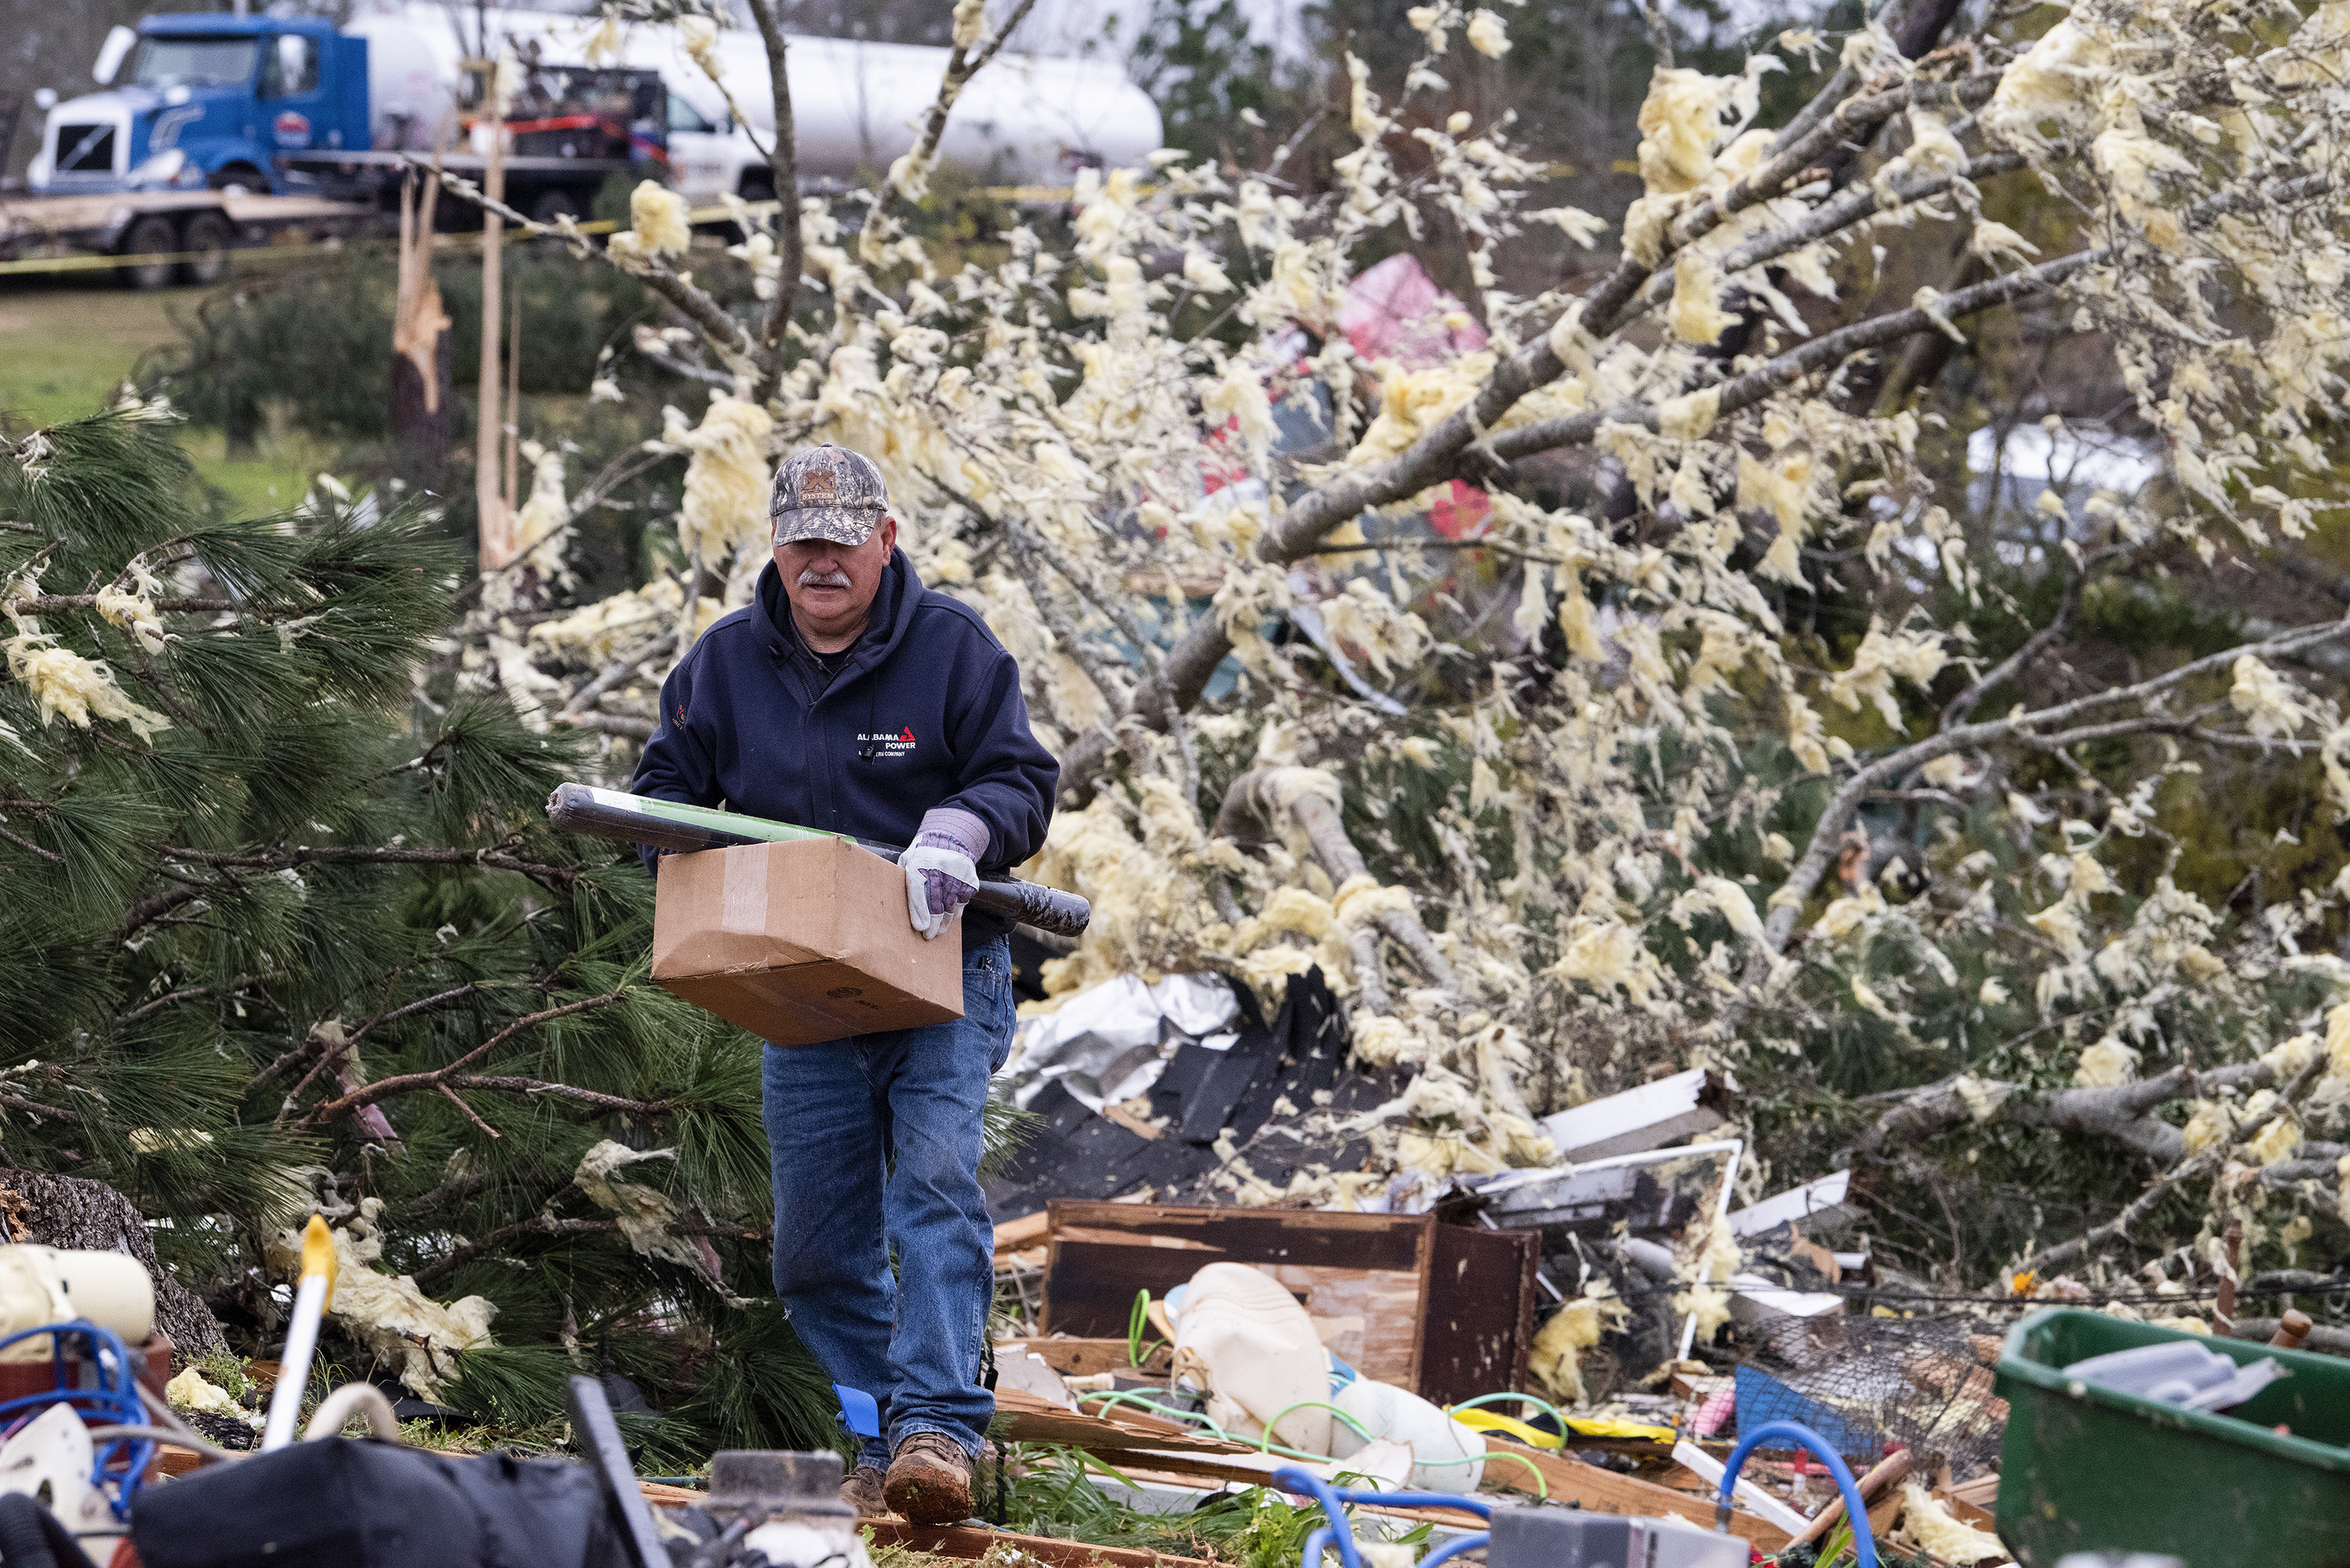 A man salvages belongings near Beauregard, Ala., on Monday March 4, 2019. Friends in eastern Alabama are helping tornado survivors retrieve the scattered pieces of their lives after devastating winds destroyed their homes and killed at least 23 people. (Mickey Welsh/Montgomery Advertiser via AP)